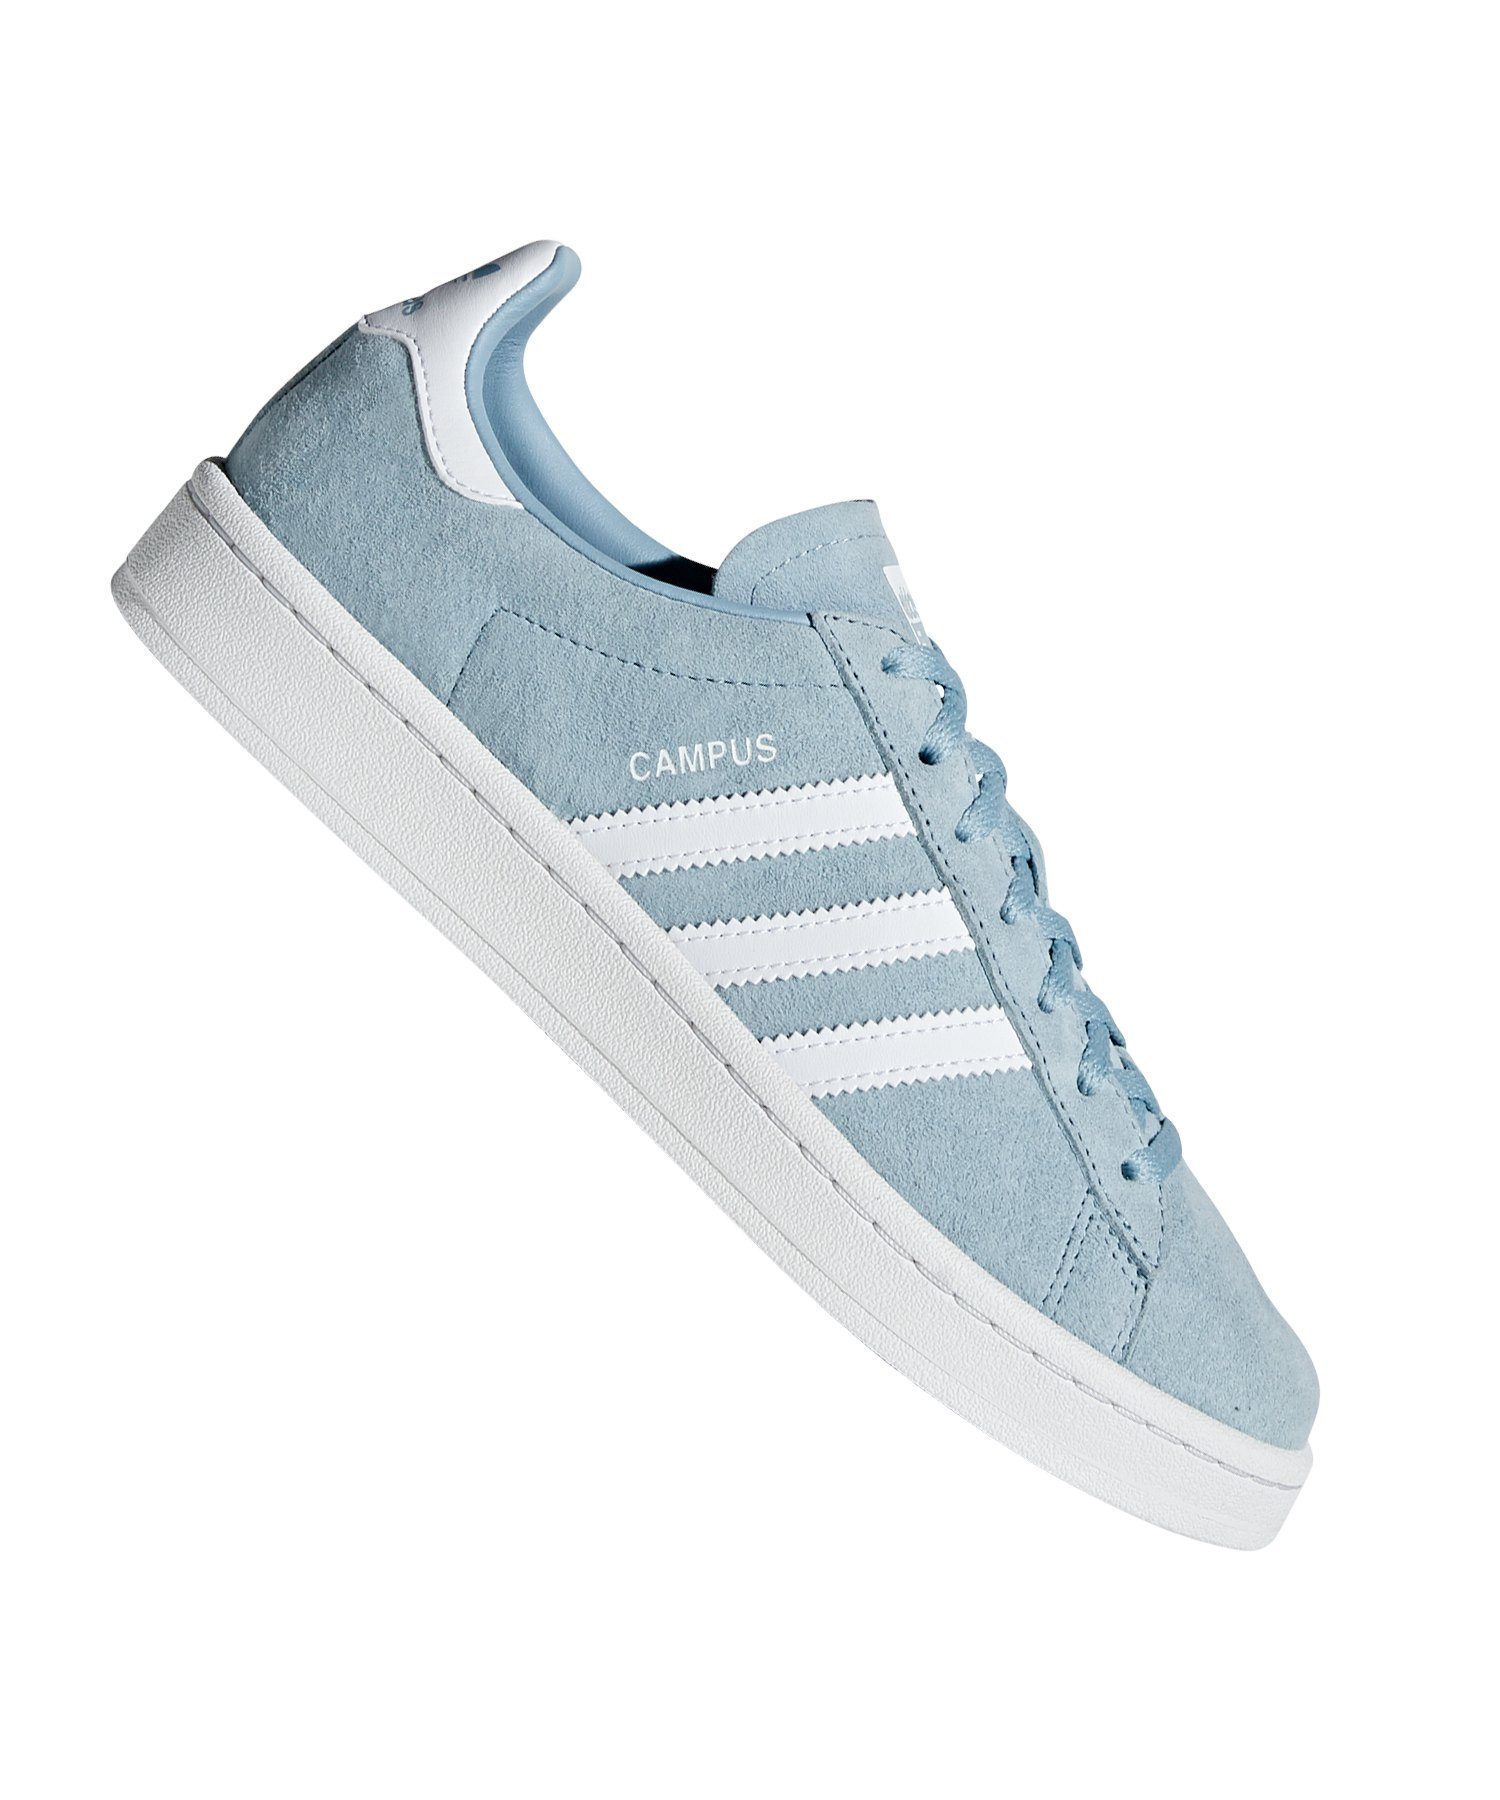 adidas Originals Campus Sneaker Damen Blau Weiss